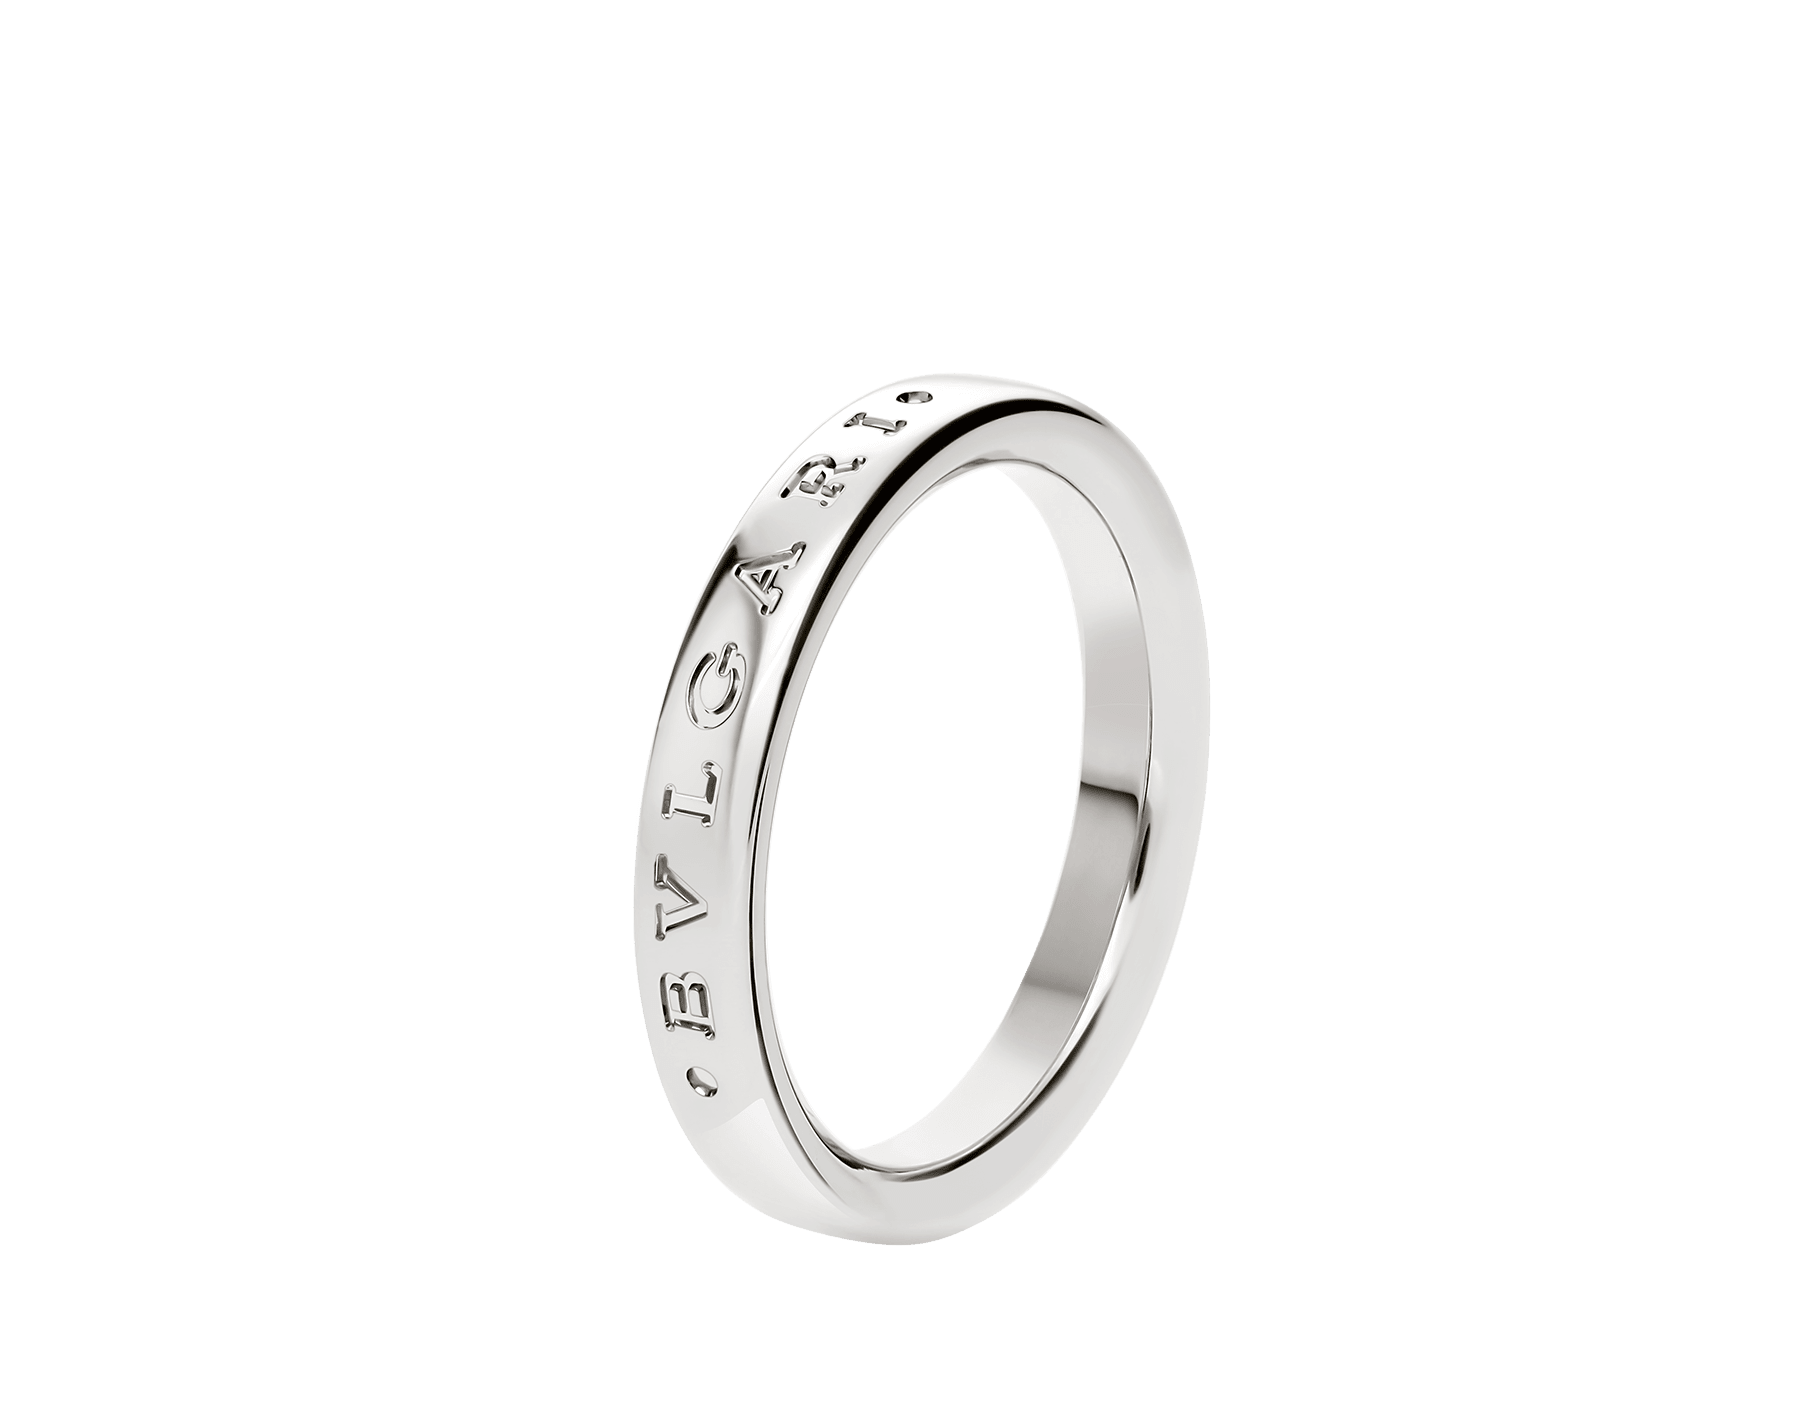 Fedi wedding band in platinum with thin BVLGARI logo engraving. AN858268 image 1